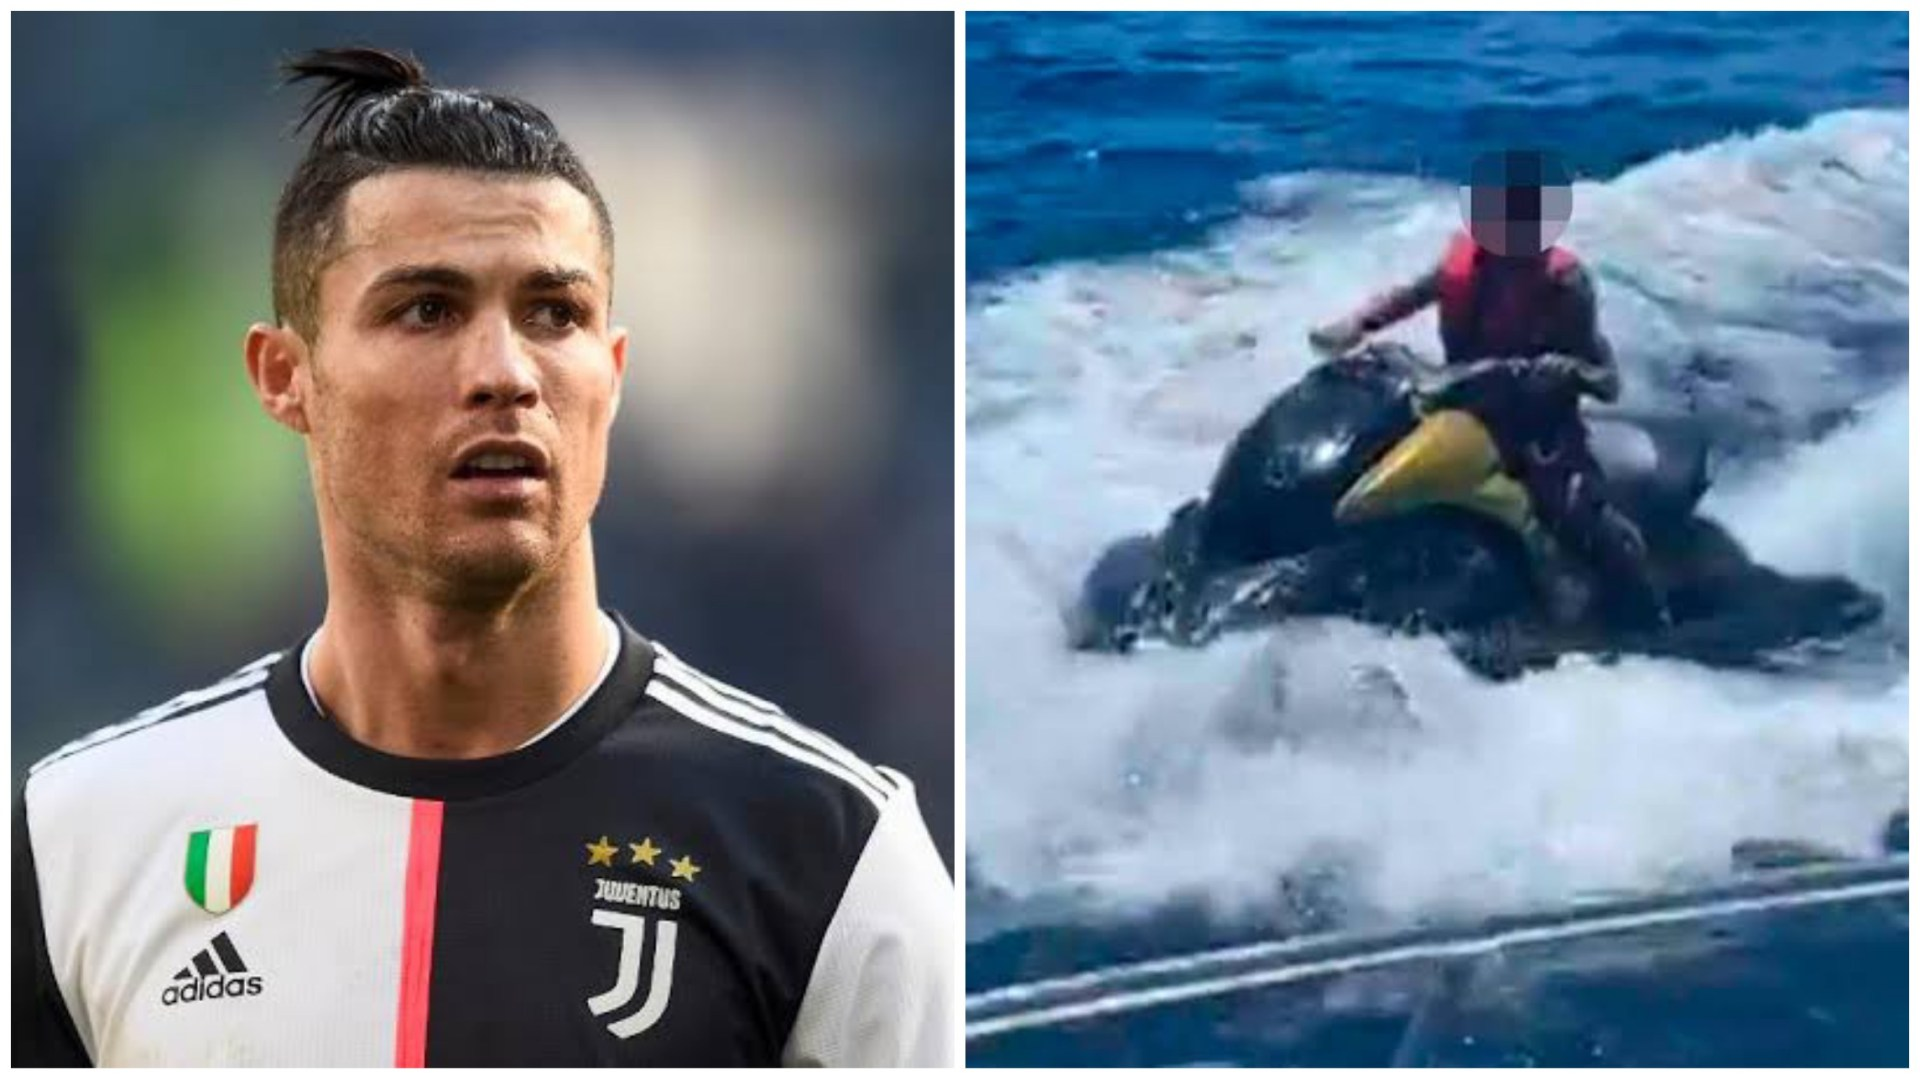 Police get involved as Cristiano Ronaldo's 10 year old son caught jet skiing alone! - THE SPORTS ROOM